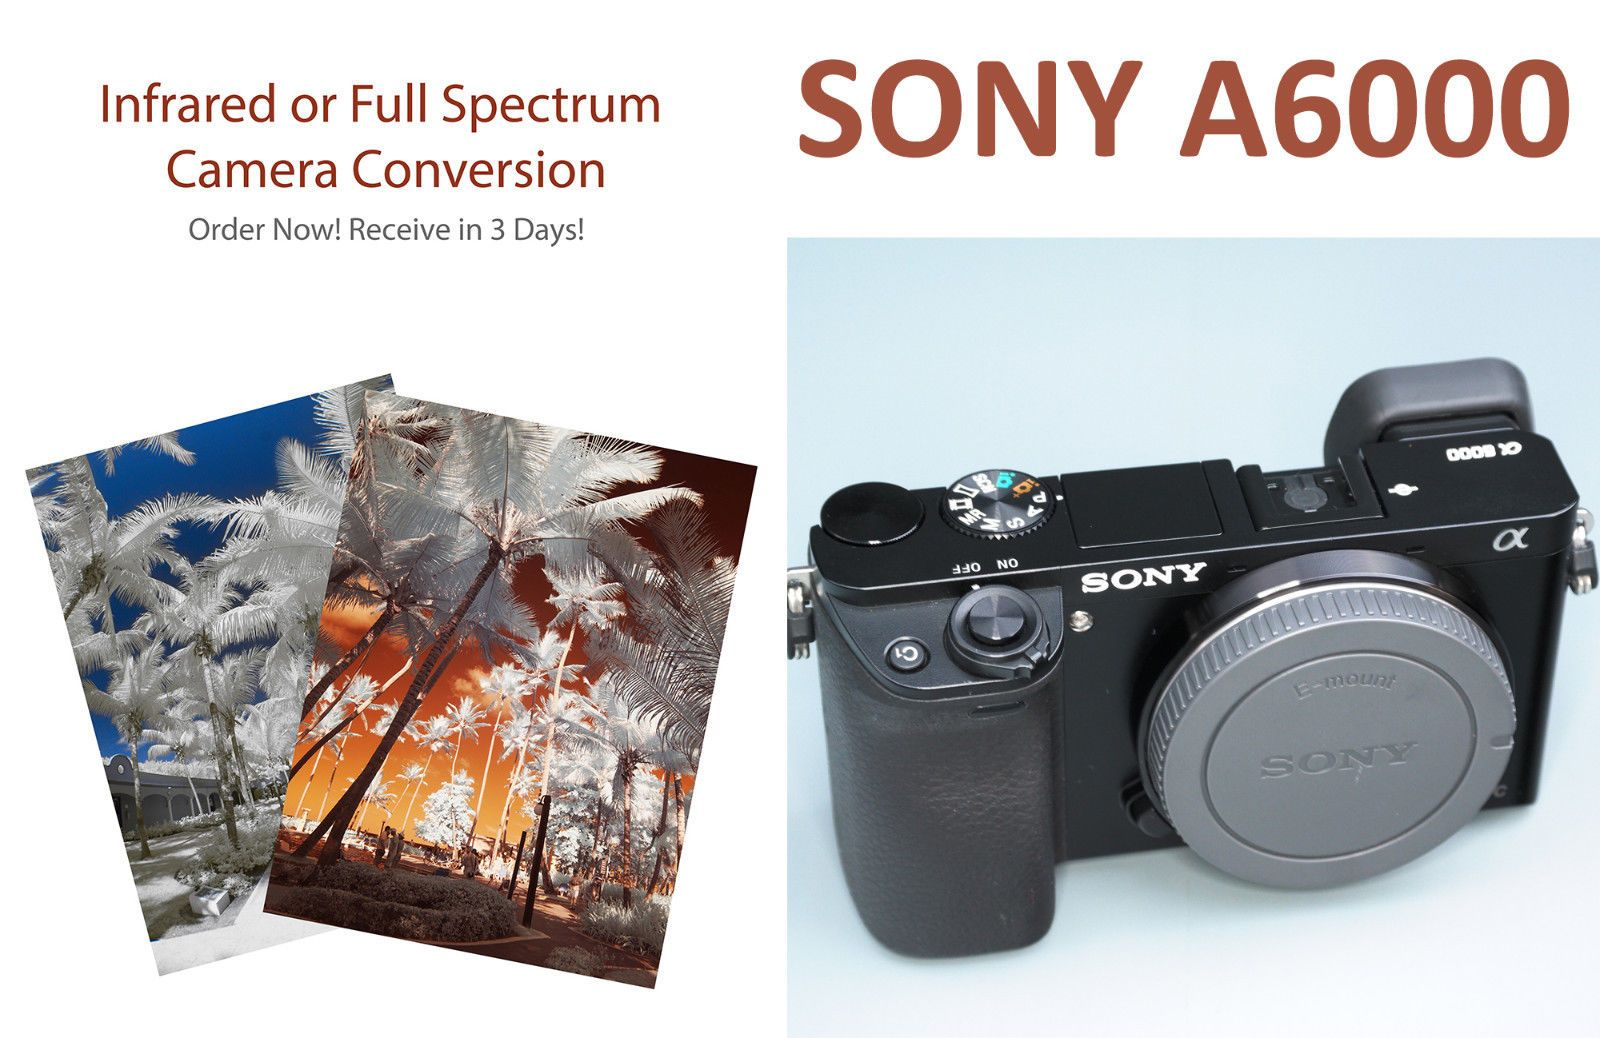 Startling Super Read Sony Mp Full Spectrum Uvvisir Converted Infrared Camera Super Read Sony Mp Full Spectrum Uvvisir Converted Infrared Sony Alpha A6000 Refurbished Sony A6000 Refurbished Canada dpreview Sony A6000 Refurbished